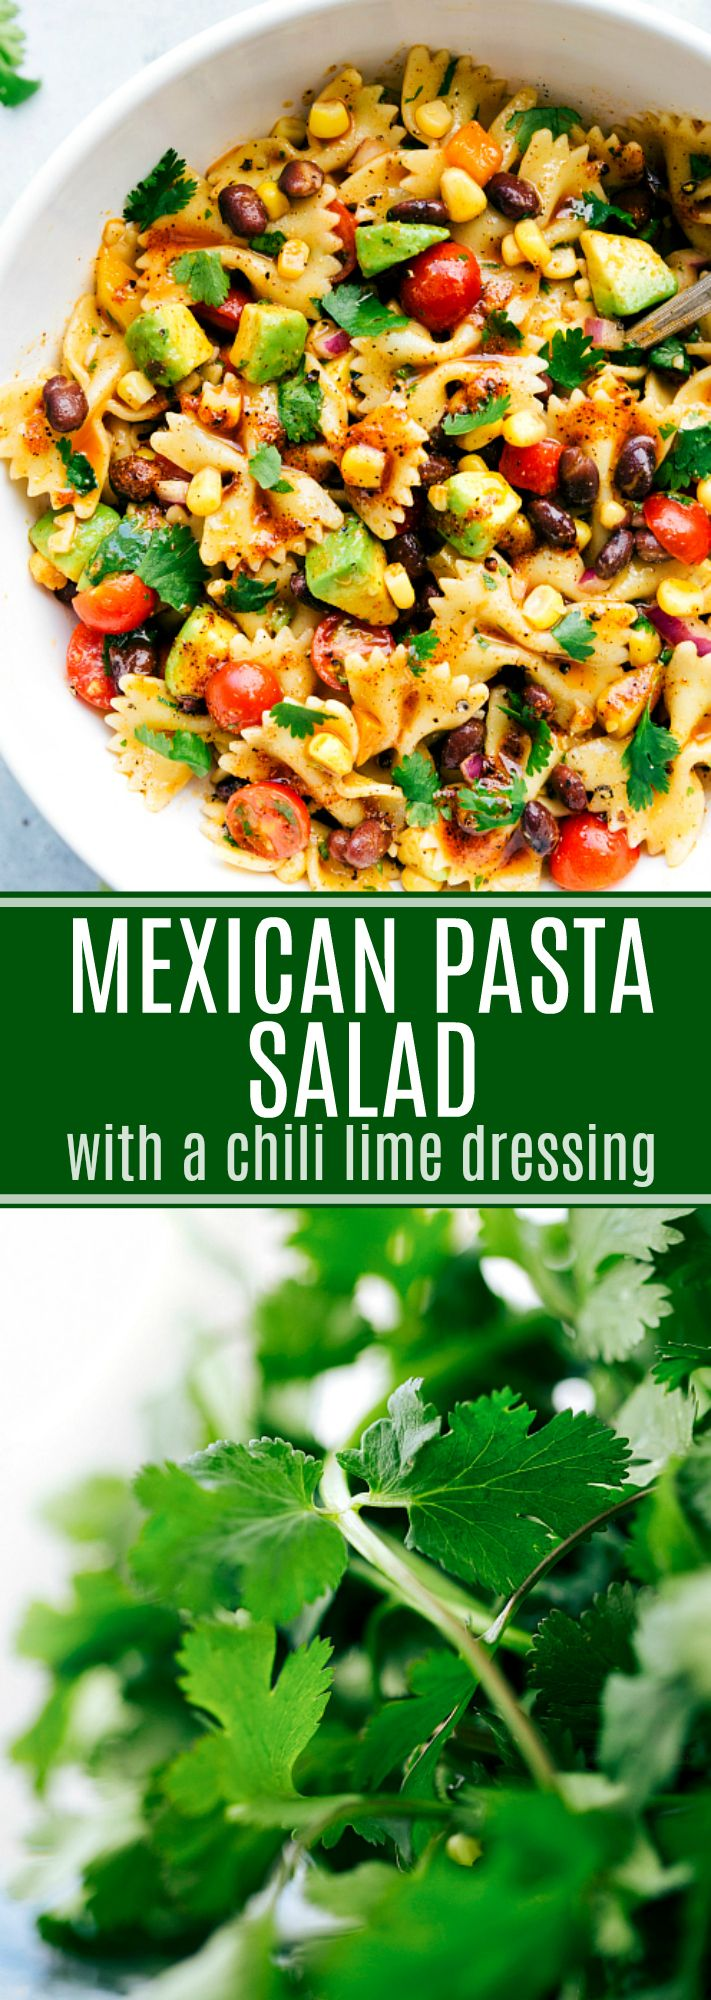 This Mexican pasta salad is packed with veggies, beans, and the most amazing chili-lime dressing! Delicious and healthier pasta salad! chelseasmessyapron.com